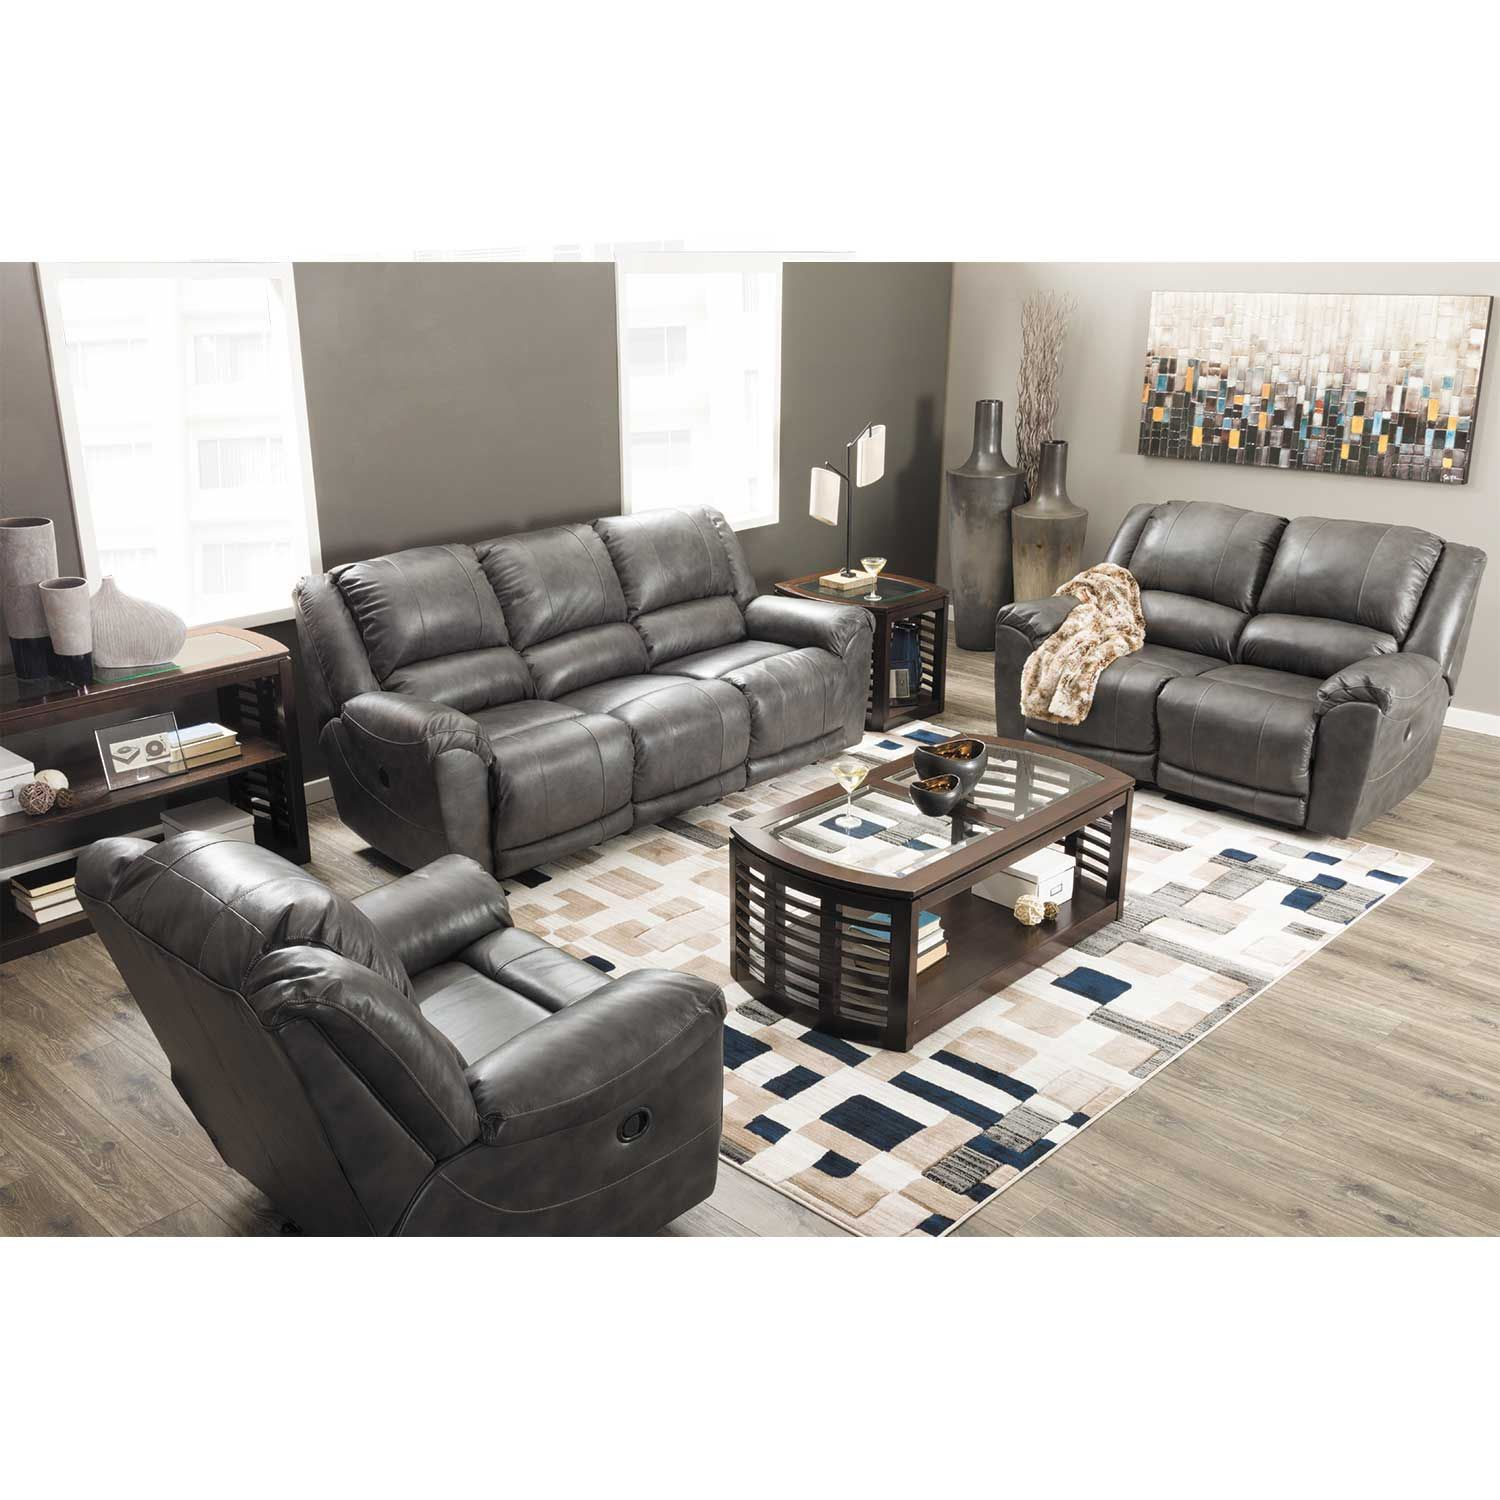 Persiphone Charcoal Leather Reclining Sofa 6070188